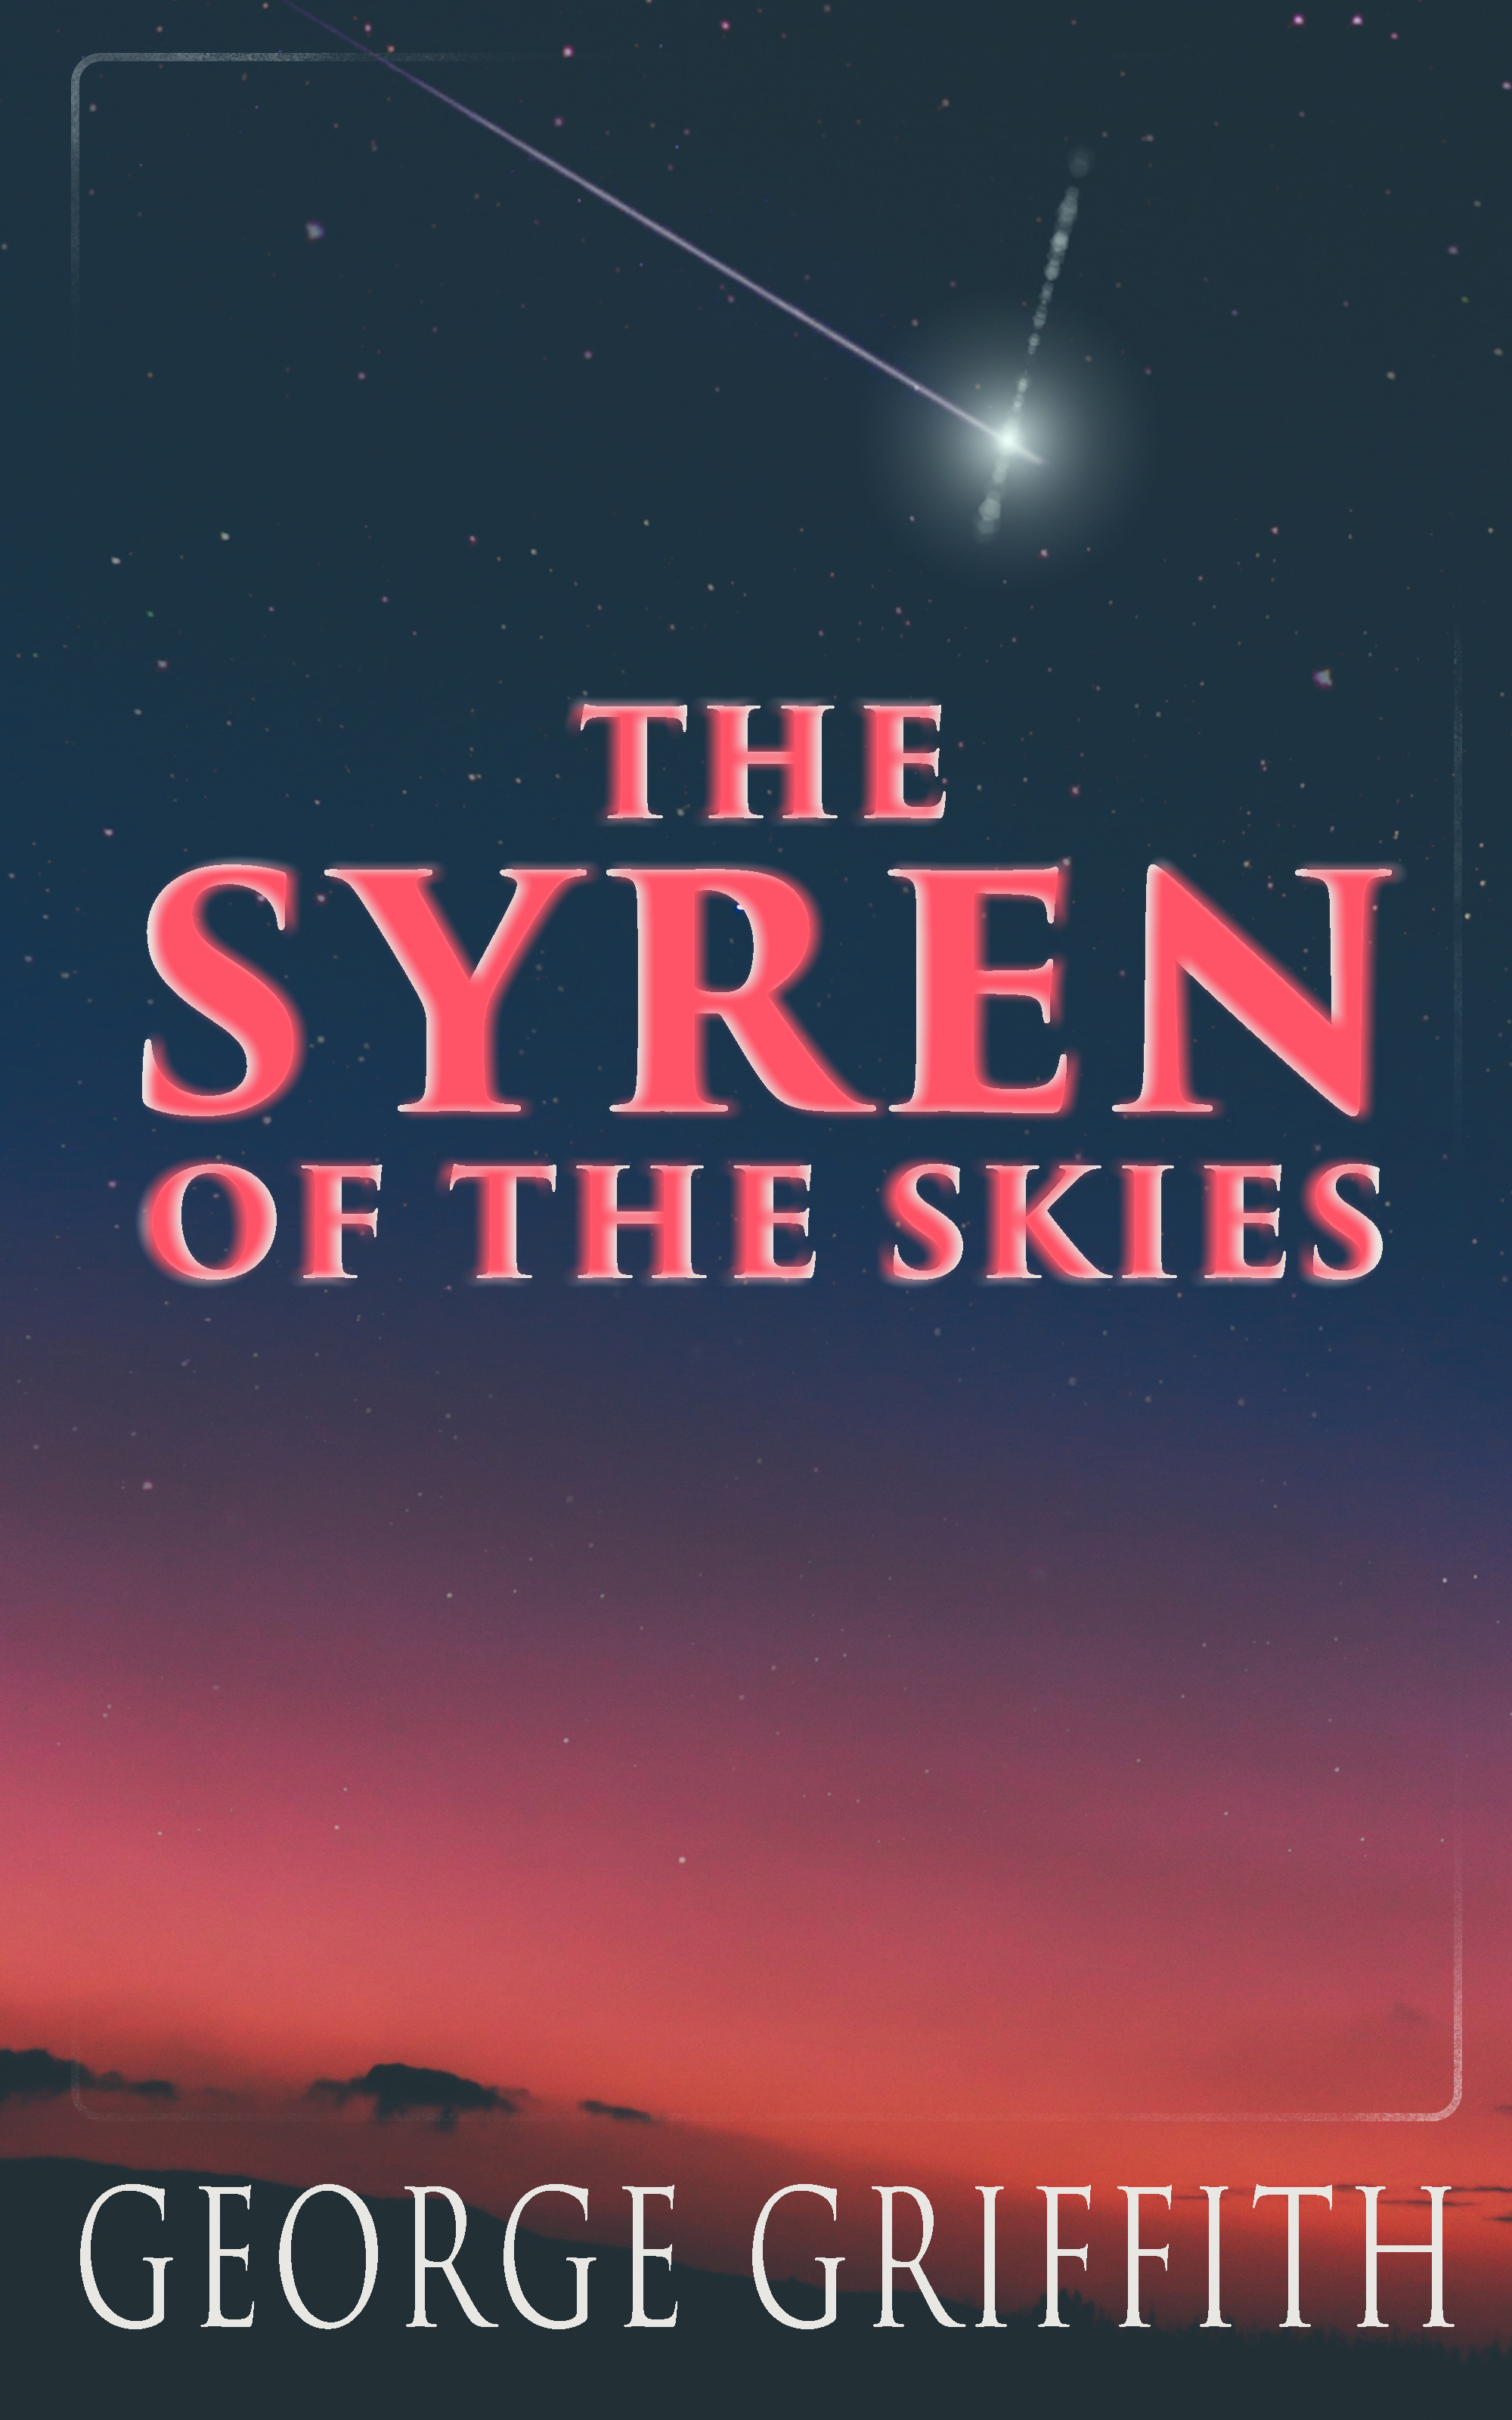 Griffith George Chetwynd The Syren of the Skies five skies